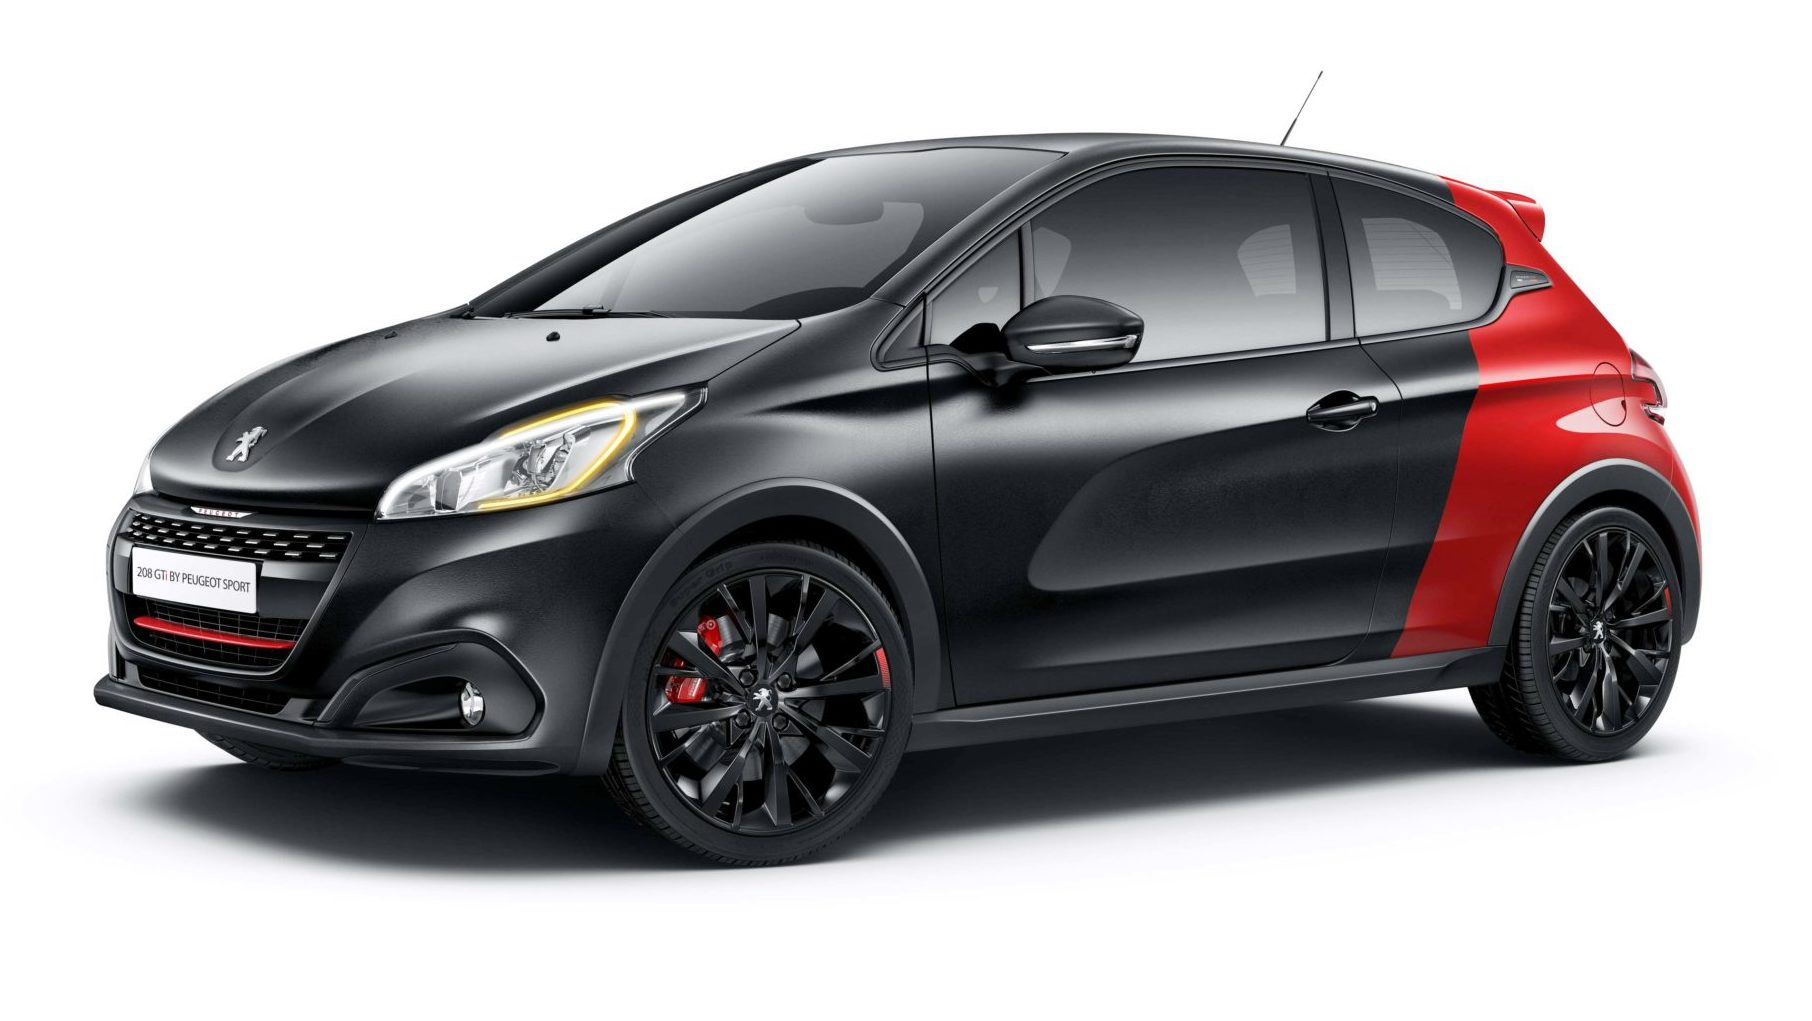 Puegot 208 GTI by PeugeotSport 30 Anos